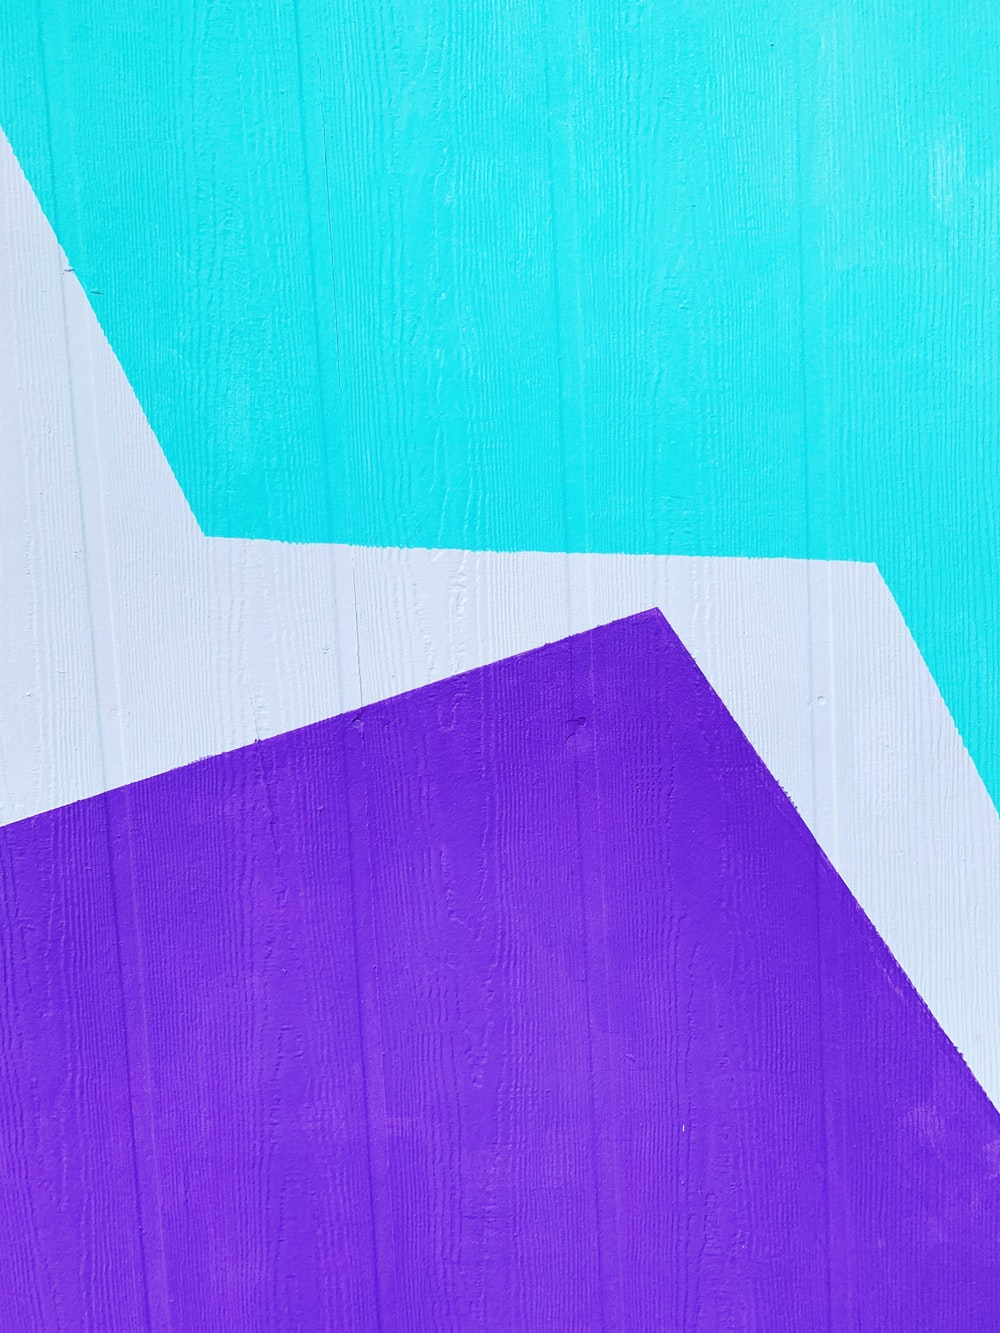 teal, white, and purple paint